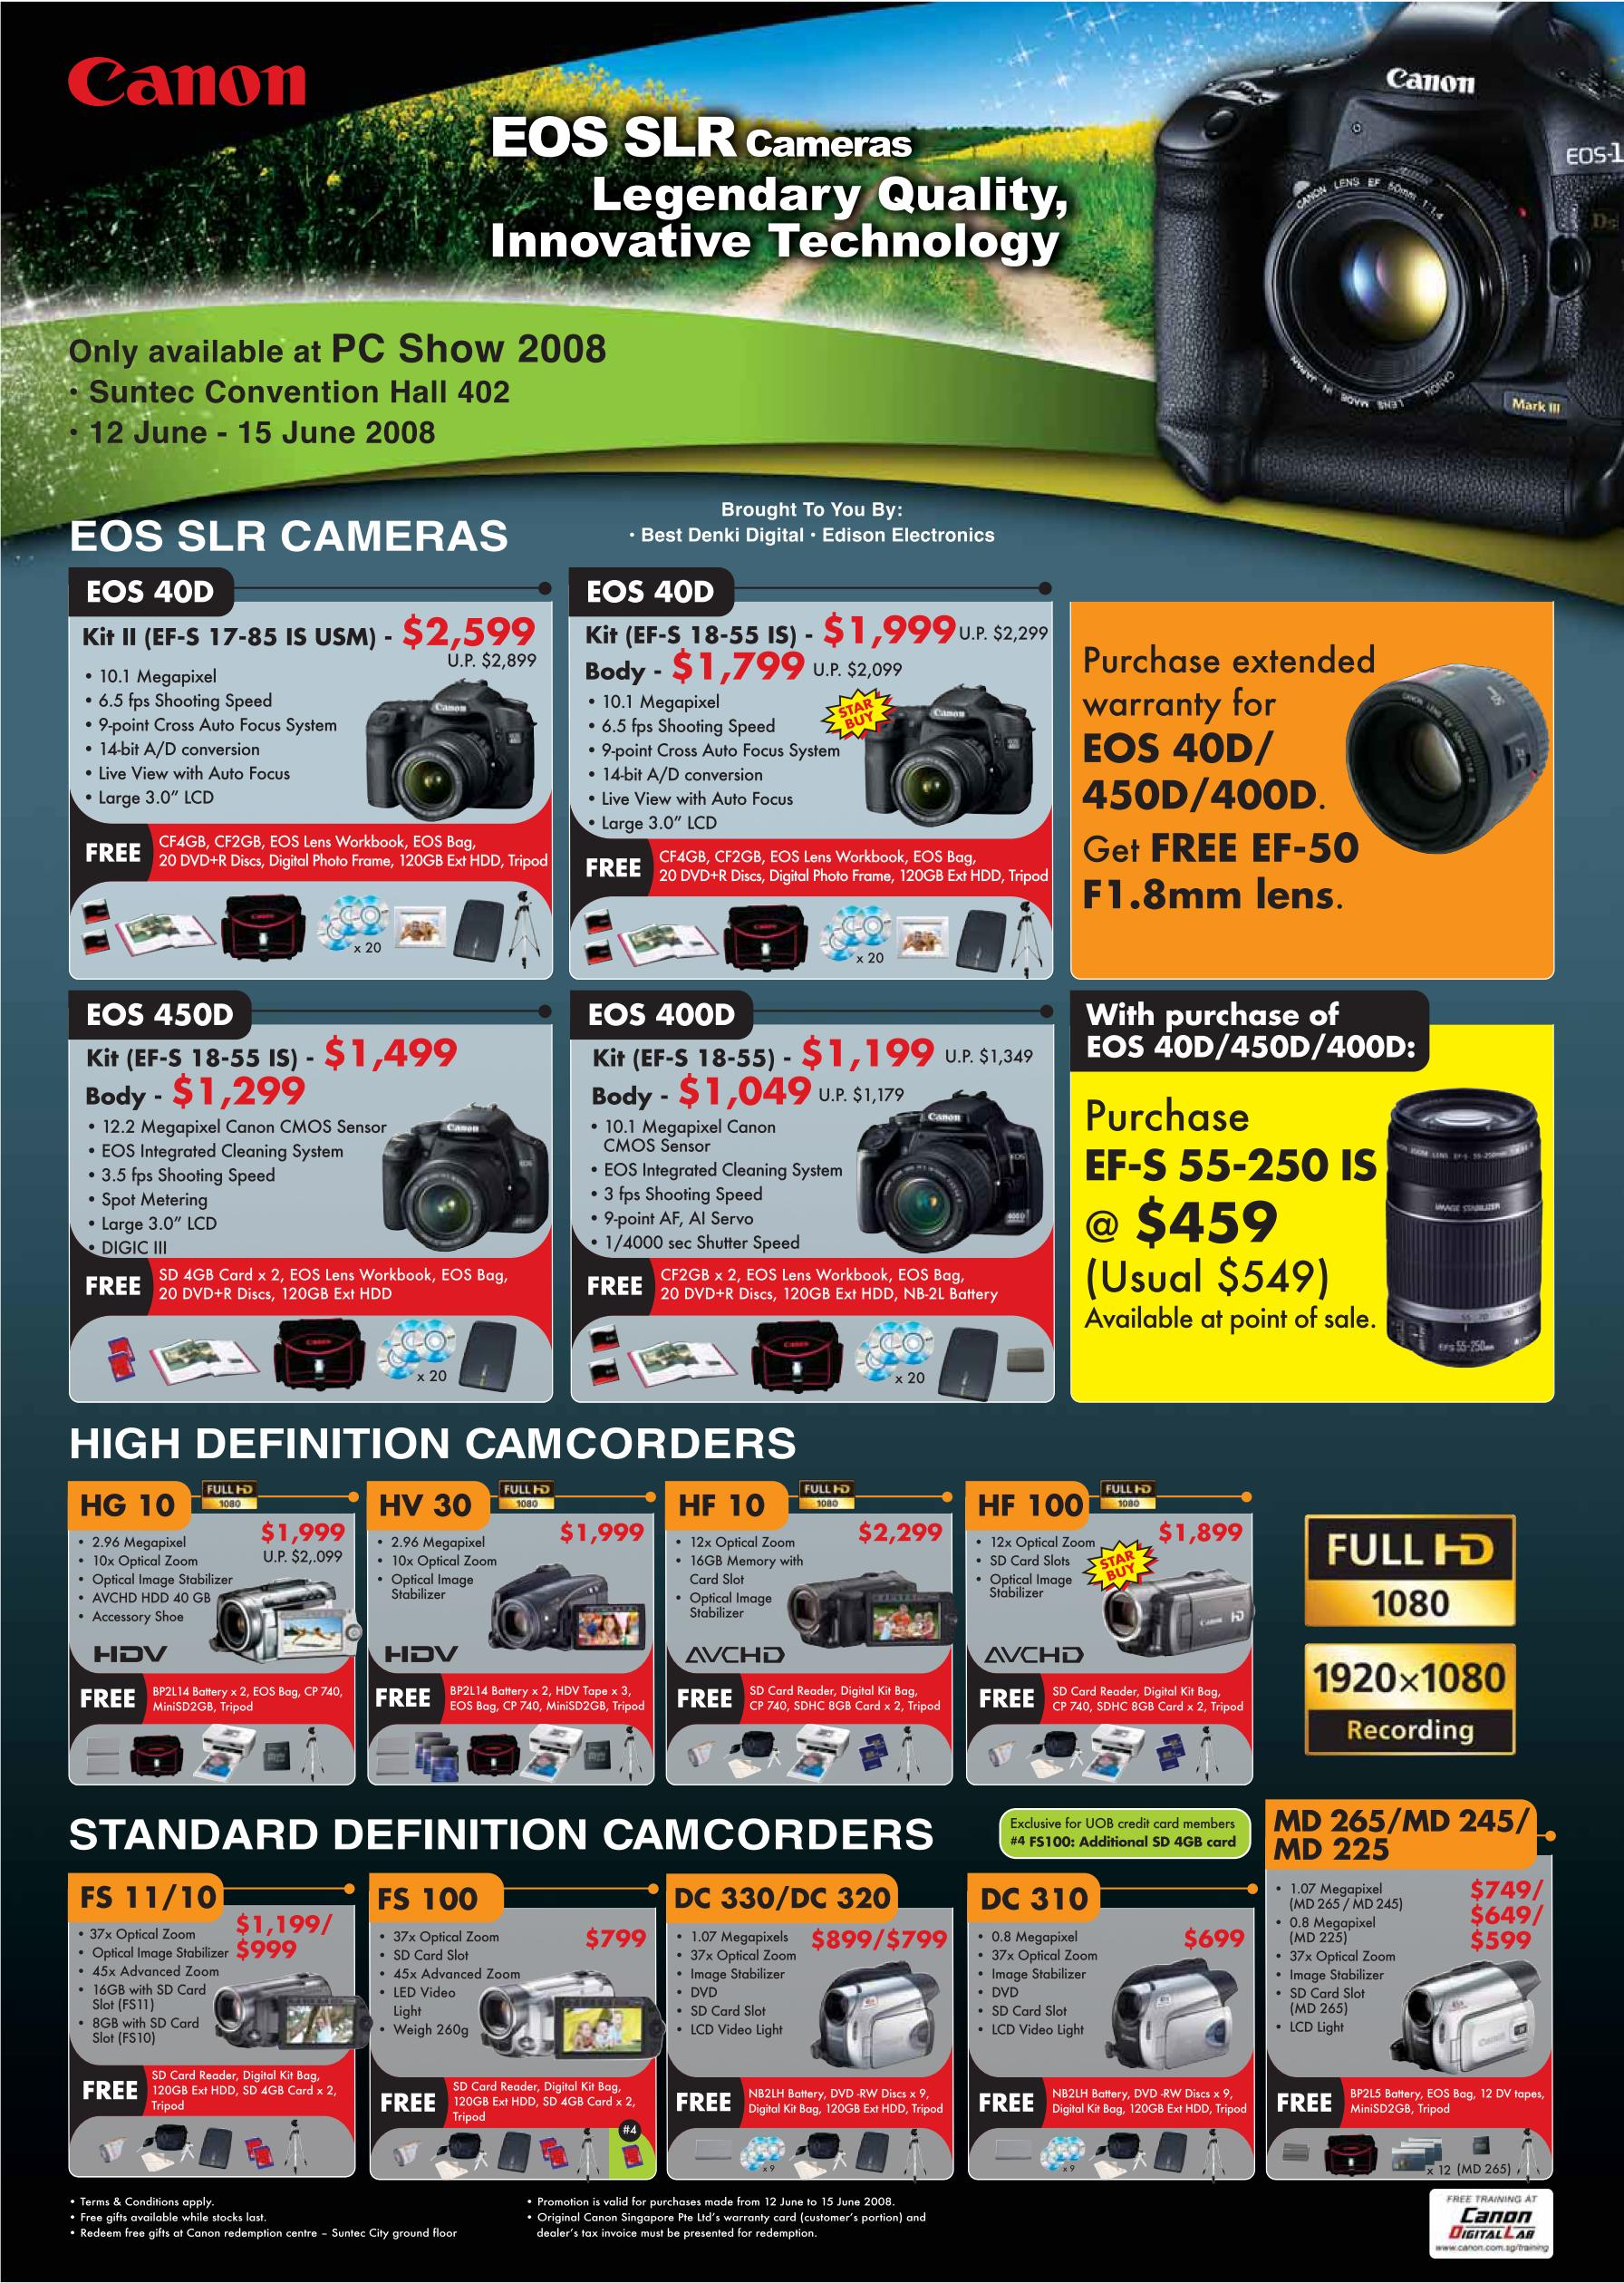 Canon Dslr Cameras Camcorders Pc Show 2008 Price List